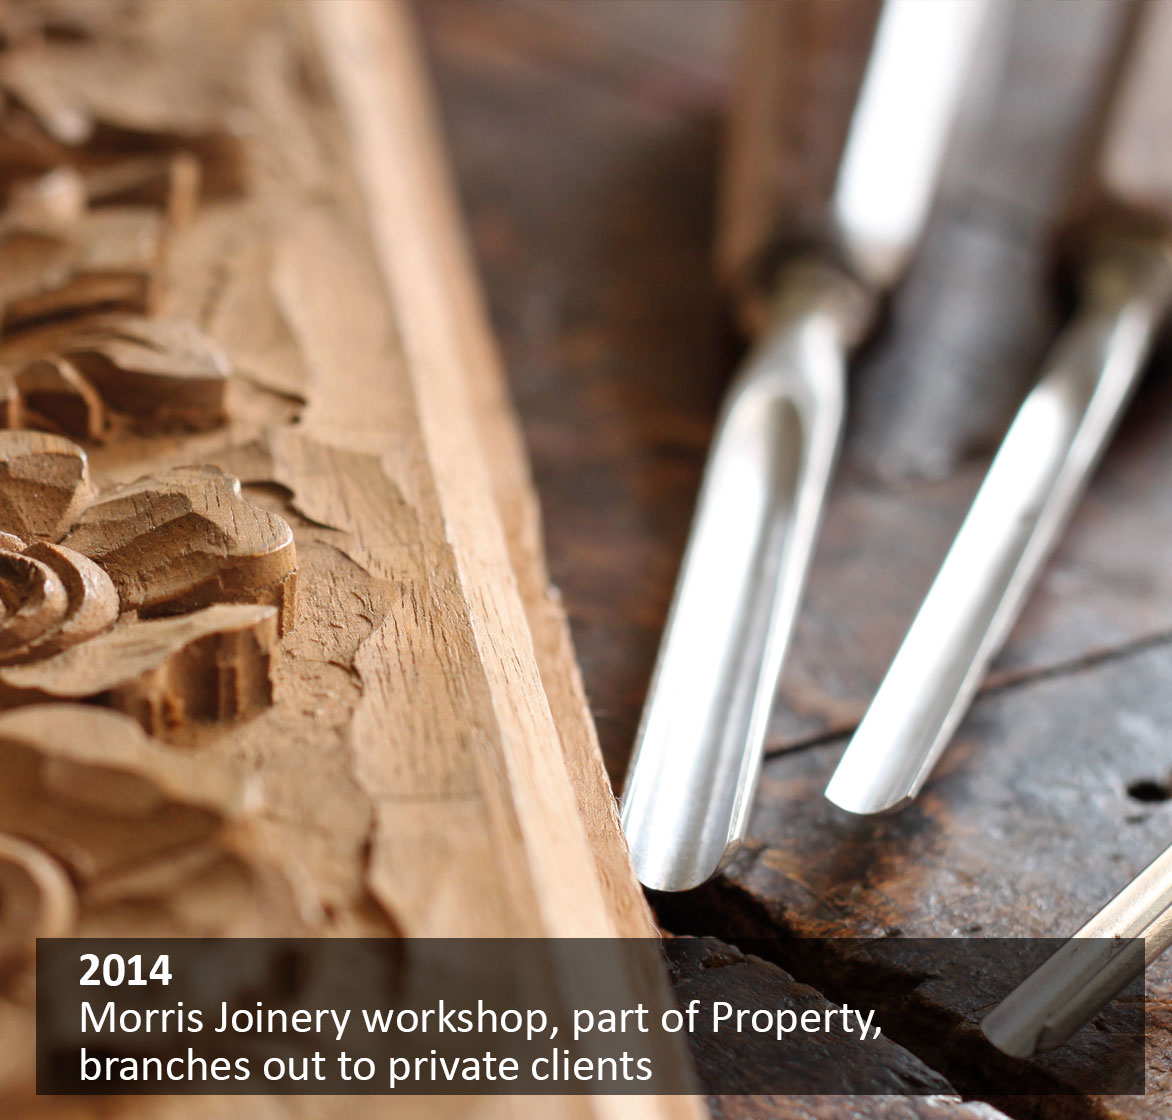 Morris Joinery workshop, part of Property, branches out to private clients